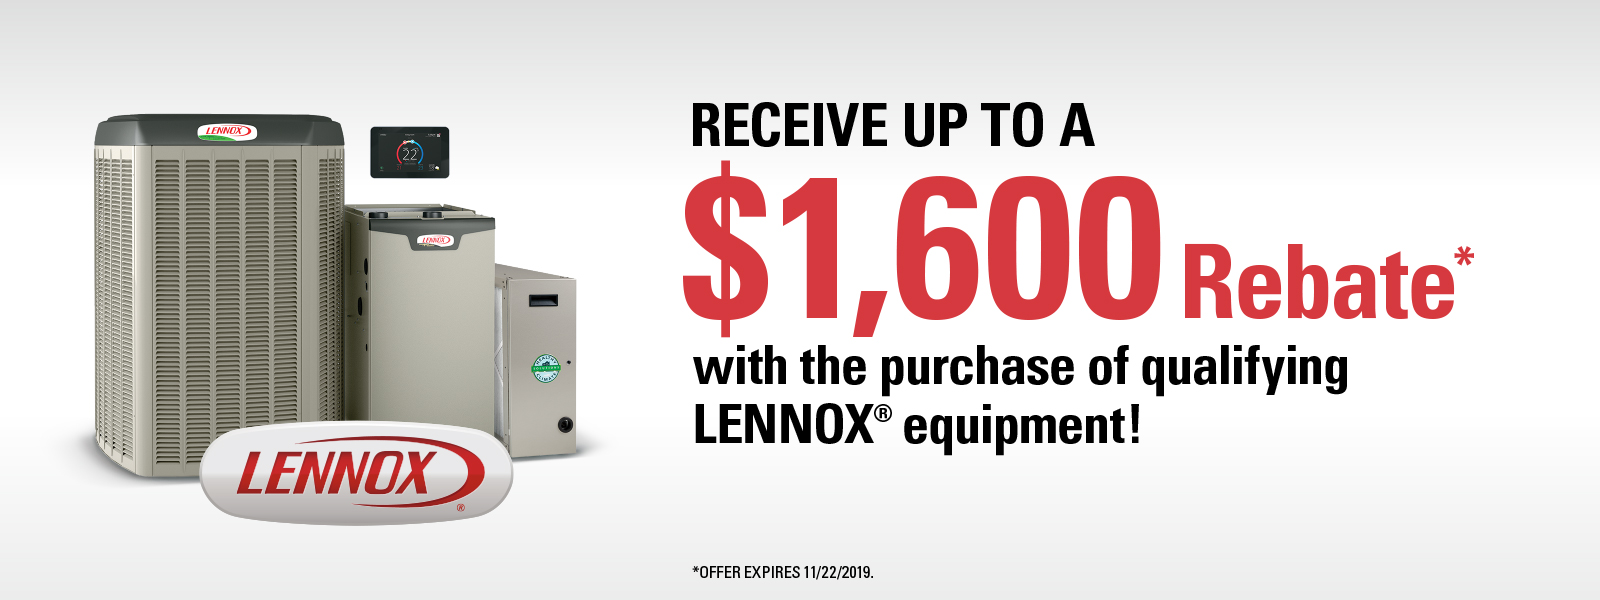 Lennox Furnace And Air Conditioner Rebates And Finance